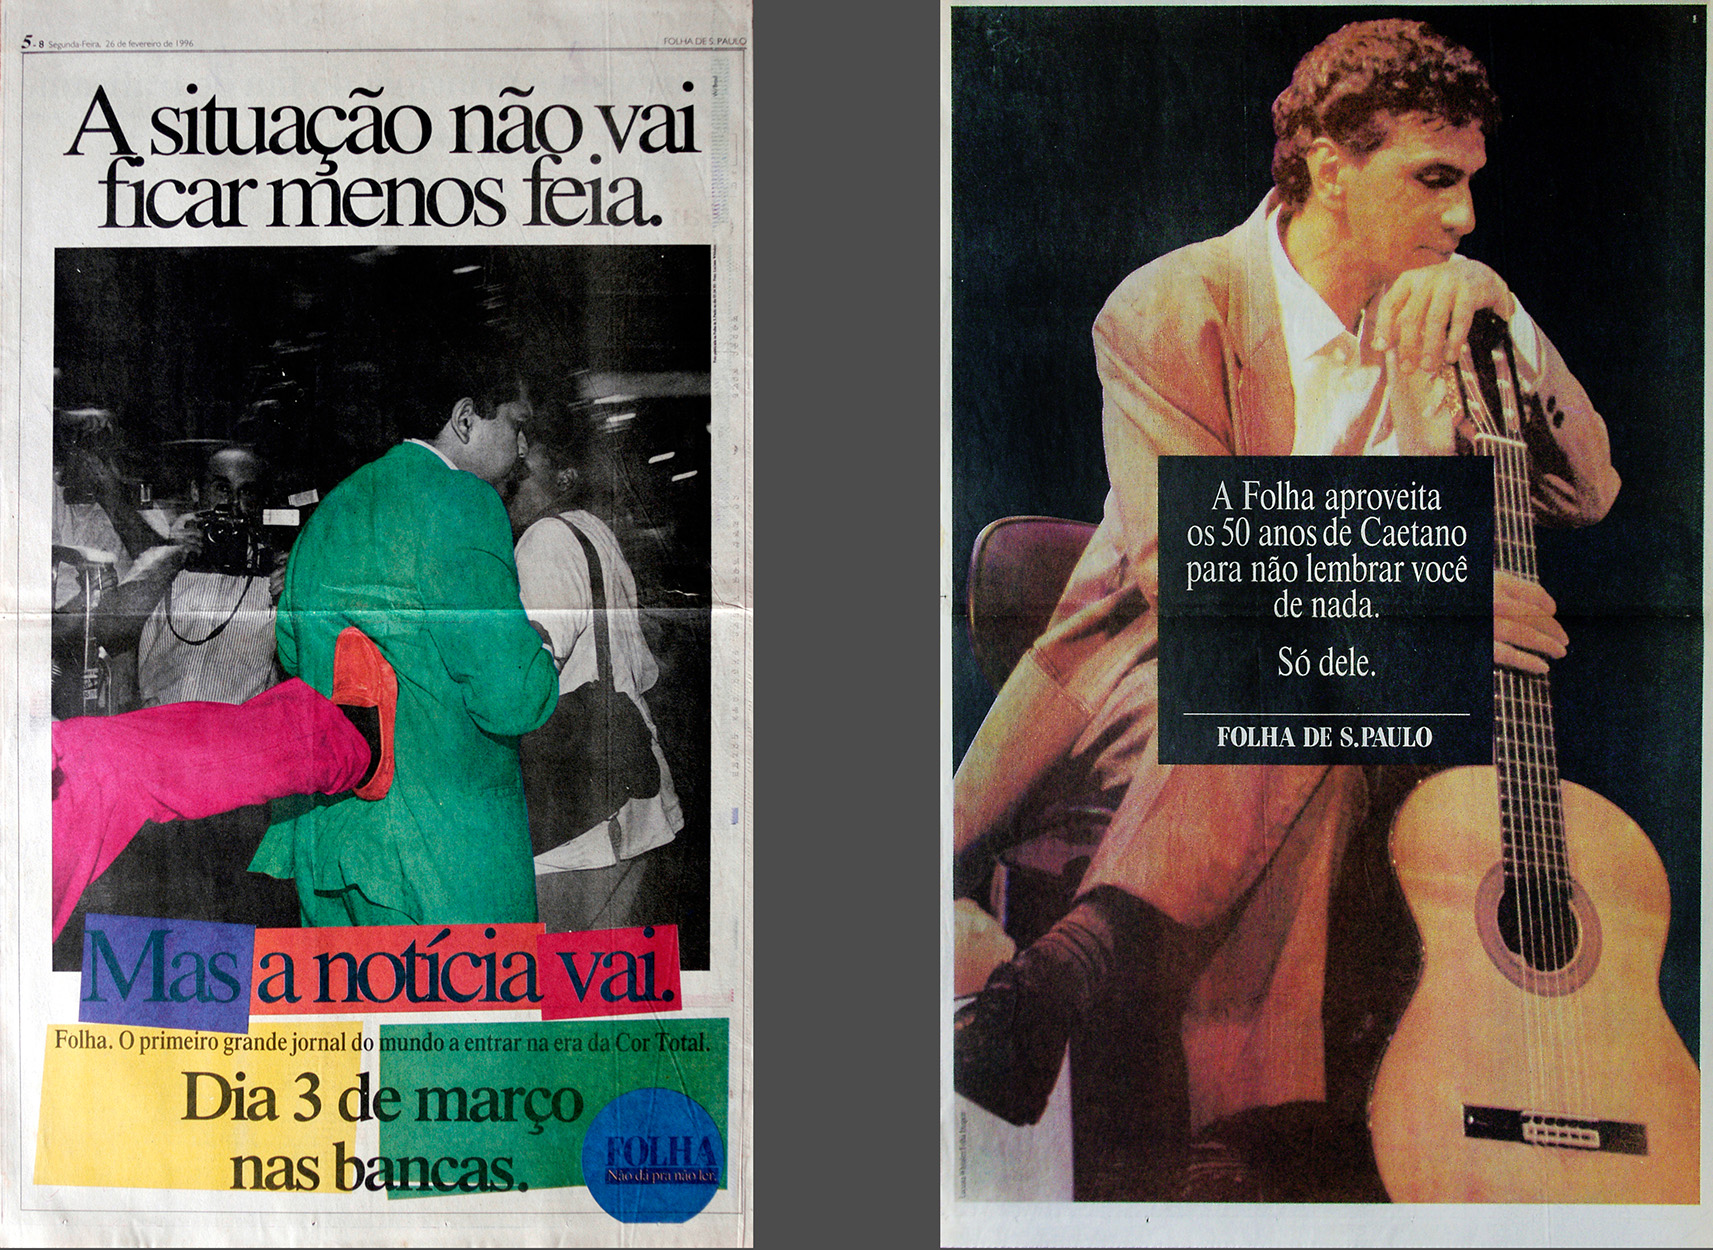 Advertising for newspaper Folha de S Paulo